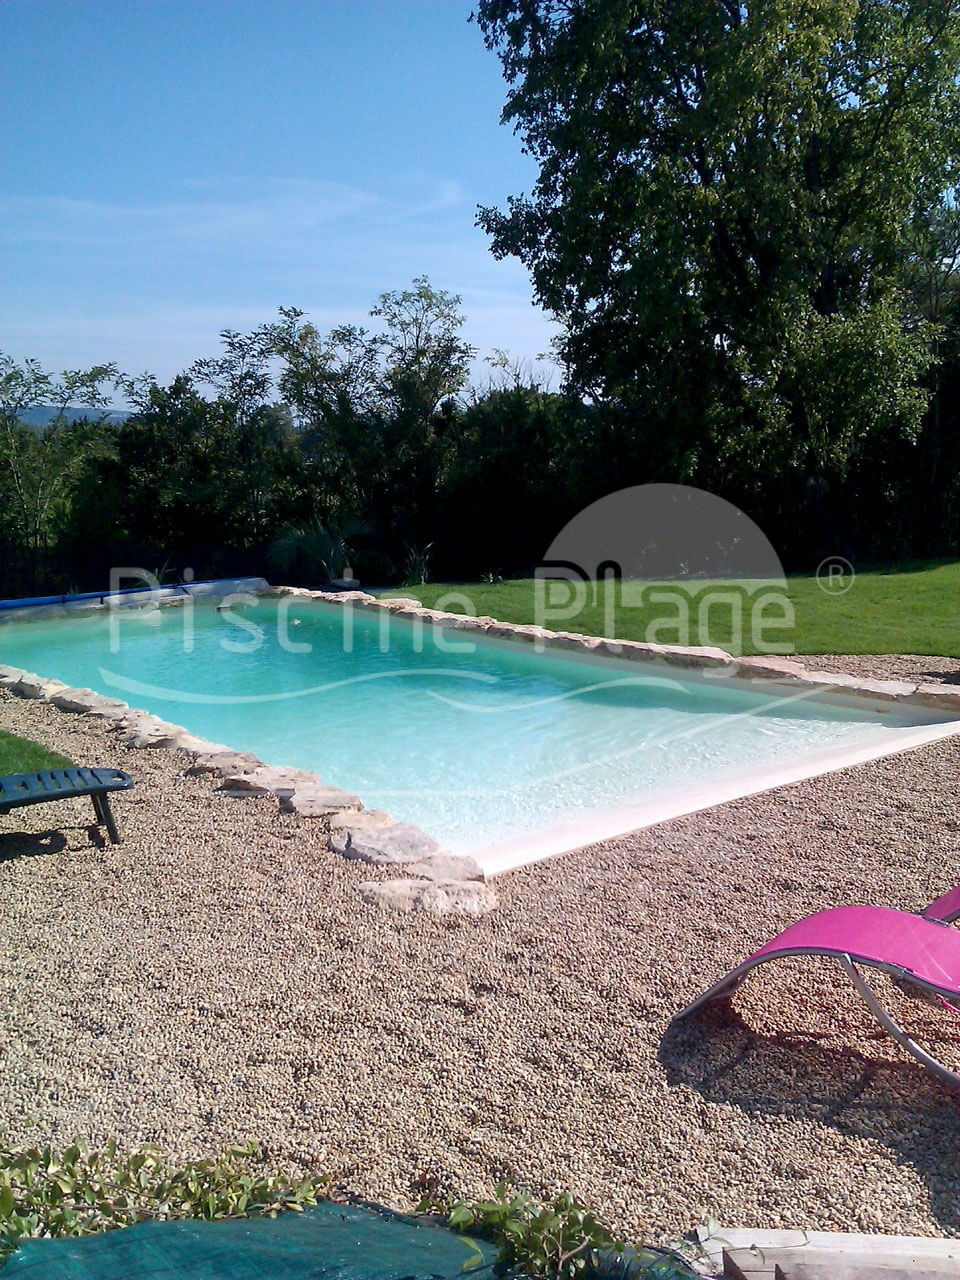 piscine avec plage immerg e valence fr jus poitiers piscine plage. Black Bedroom Furniture Sets. Home Design Ideas